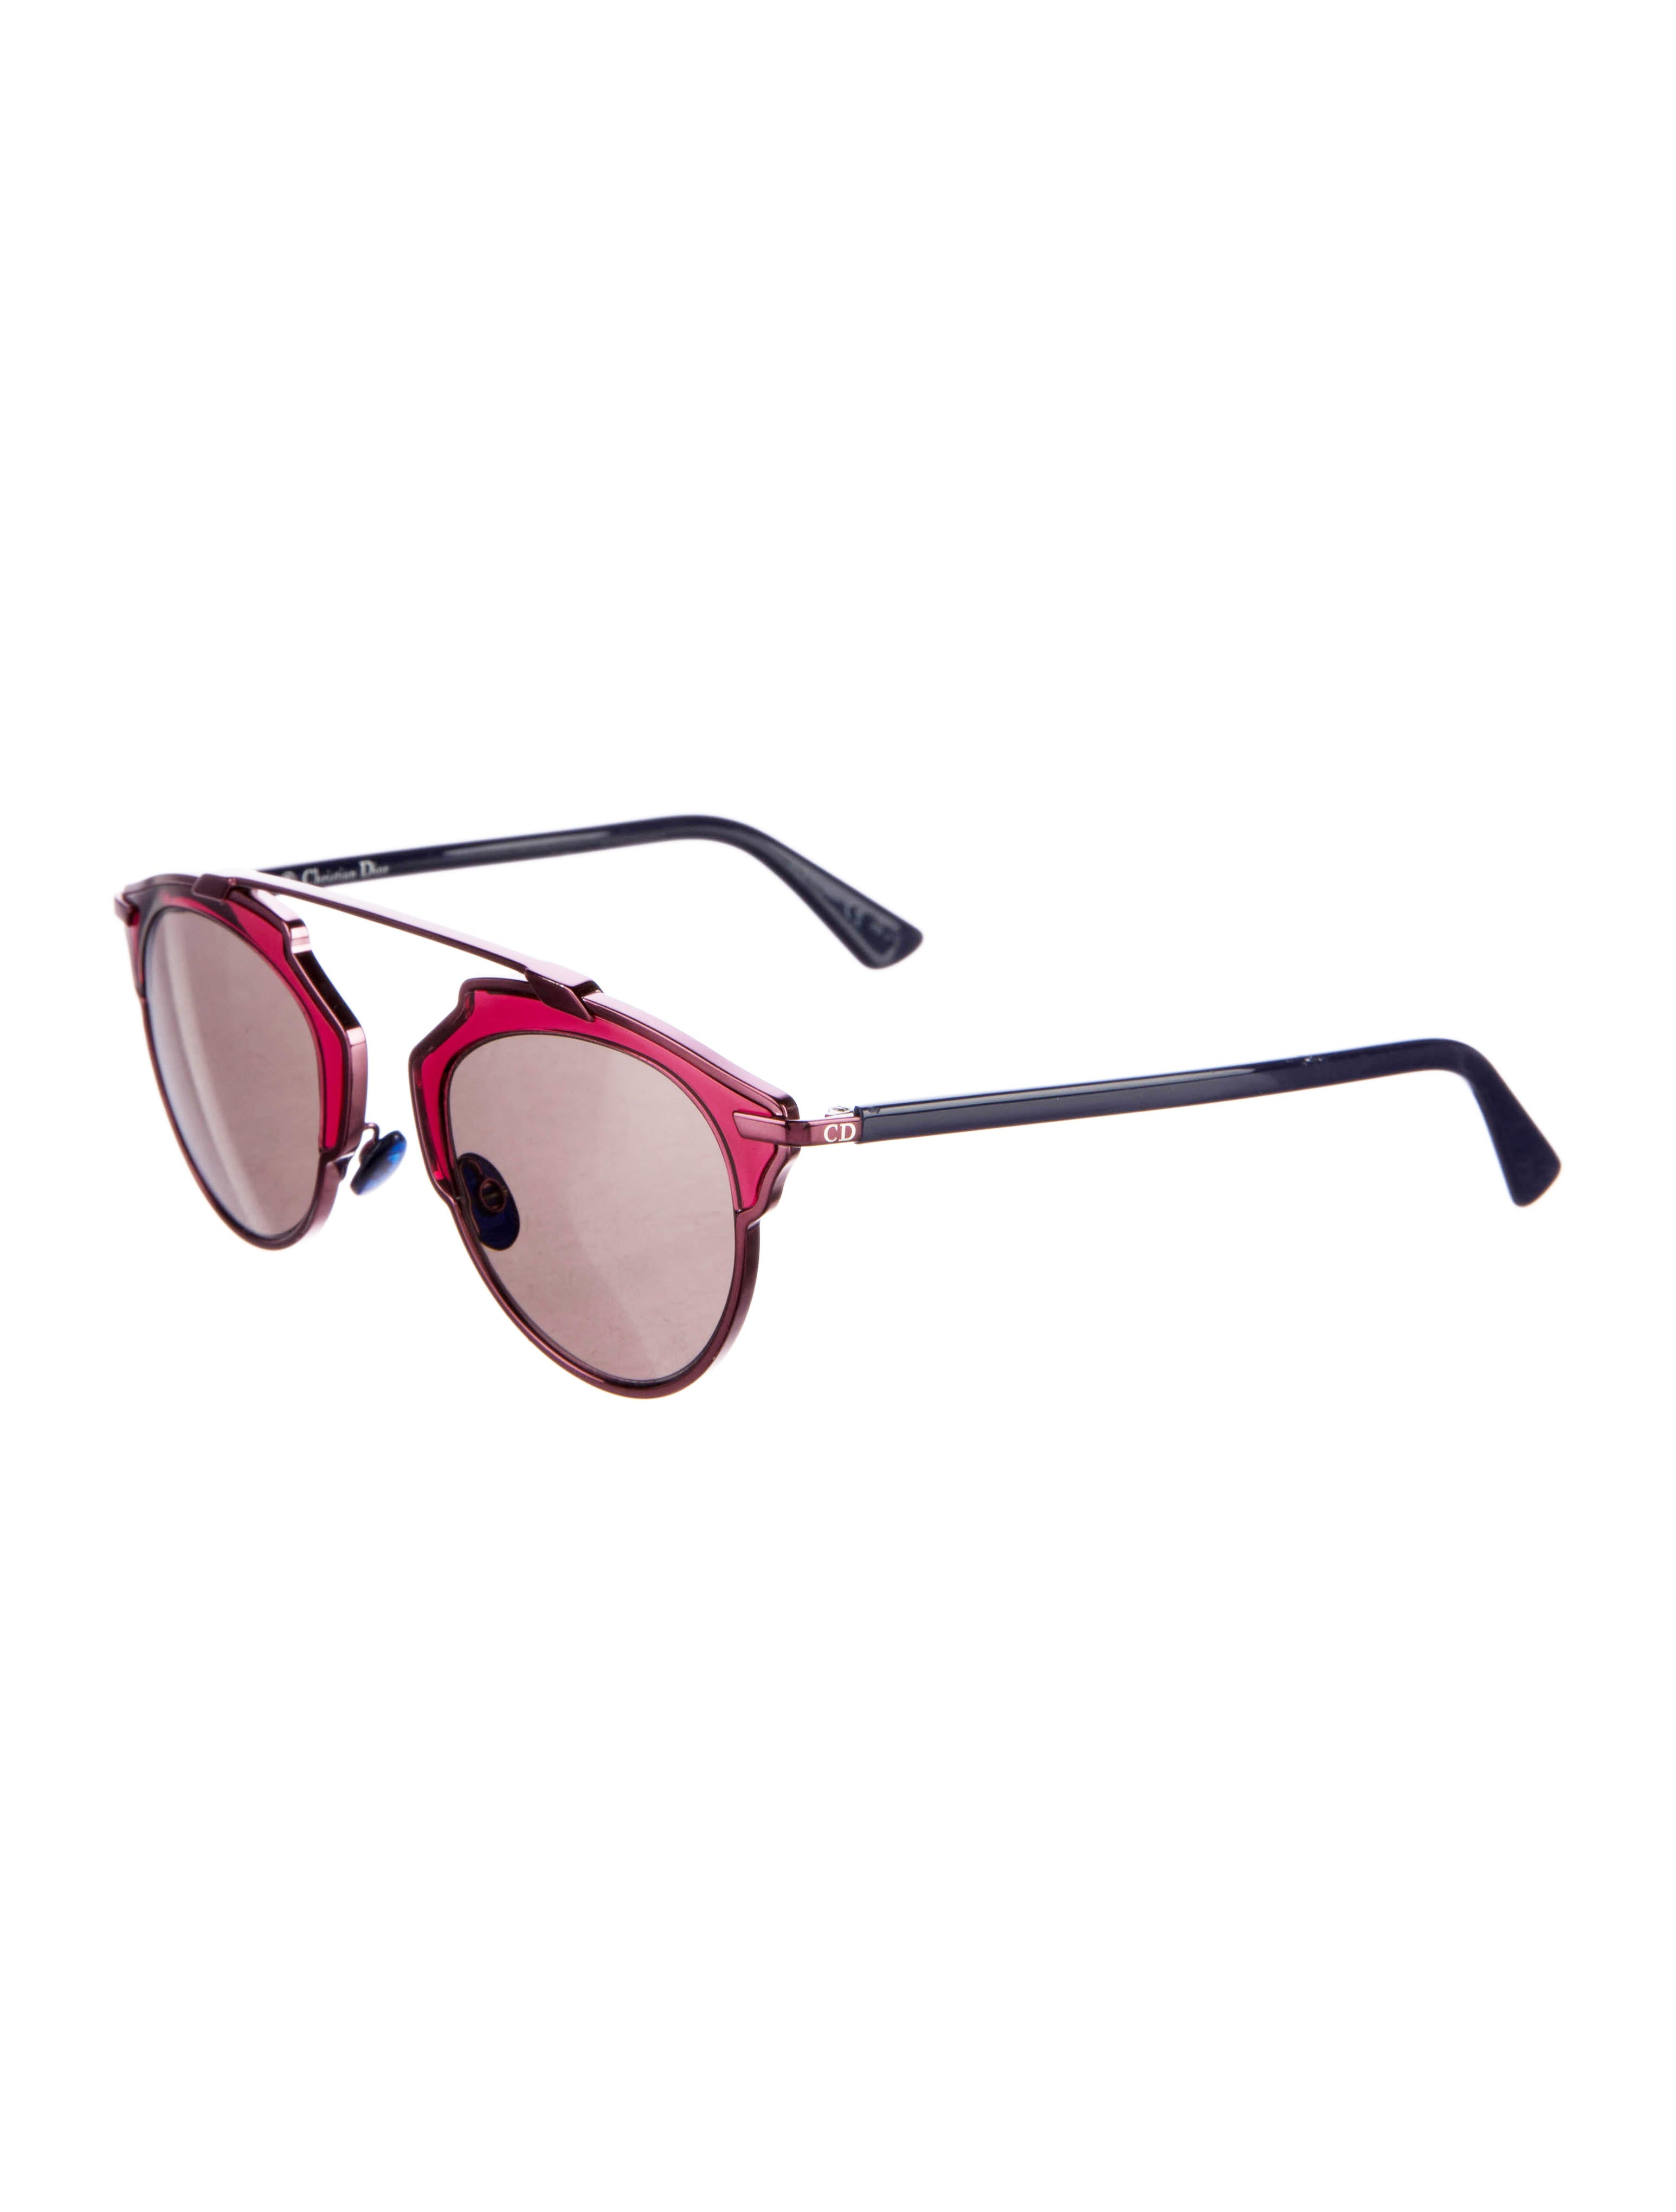 8d00313065 Christian Dior So Real Mirrored Sunglasses - Accessories - CHR55209